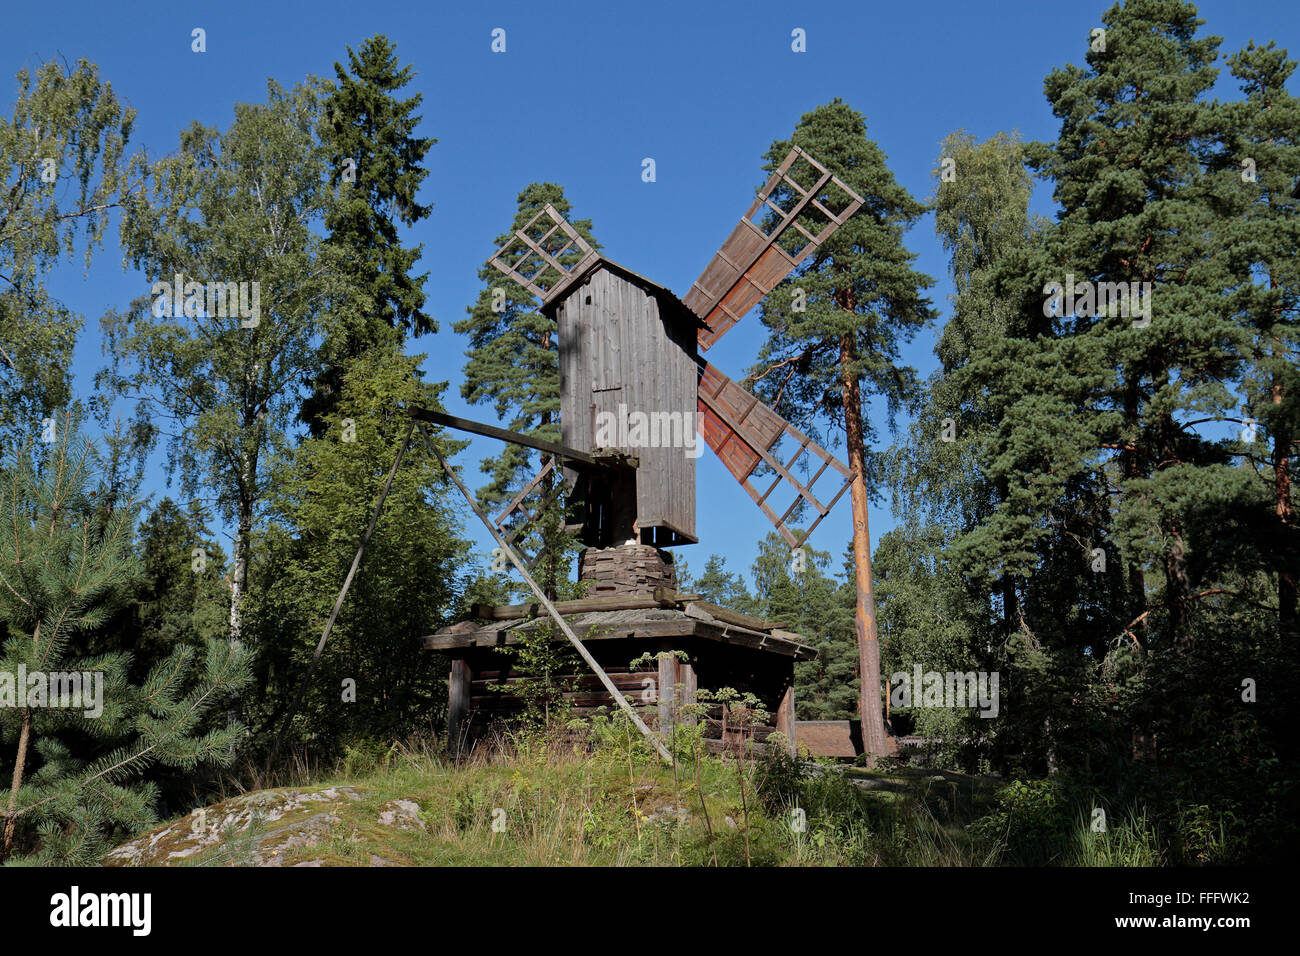 Wooden windmill (Tuulimylly) on Seurasaari Island and Open-Air Museum, Helsinki, Finland. - Stock Image